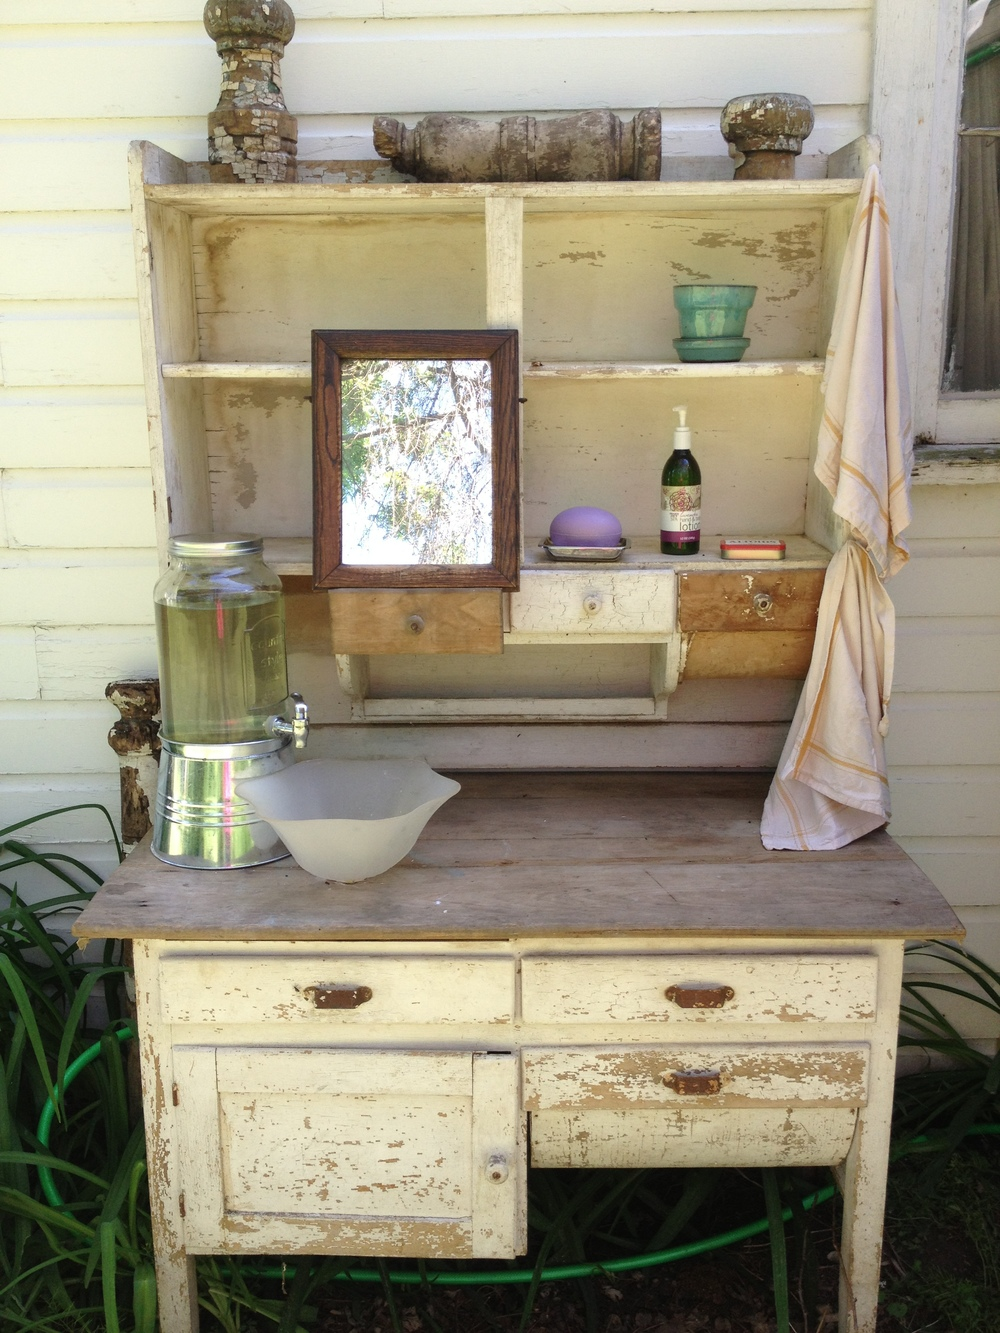 Some guests ended up camping on the property so an antique hutch was outfitted as the washing station next to the port a potties.